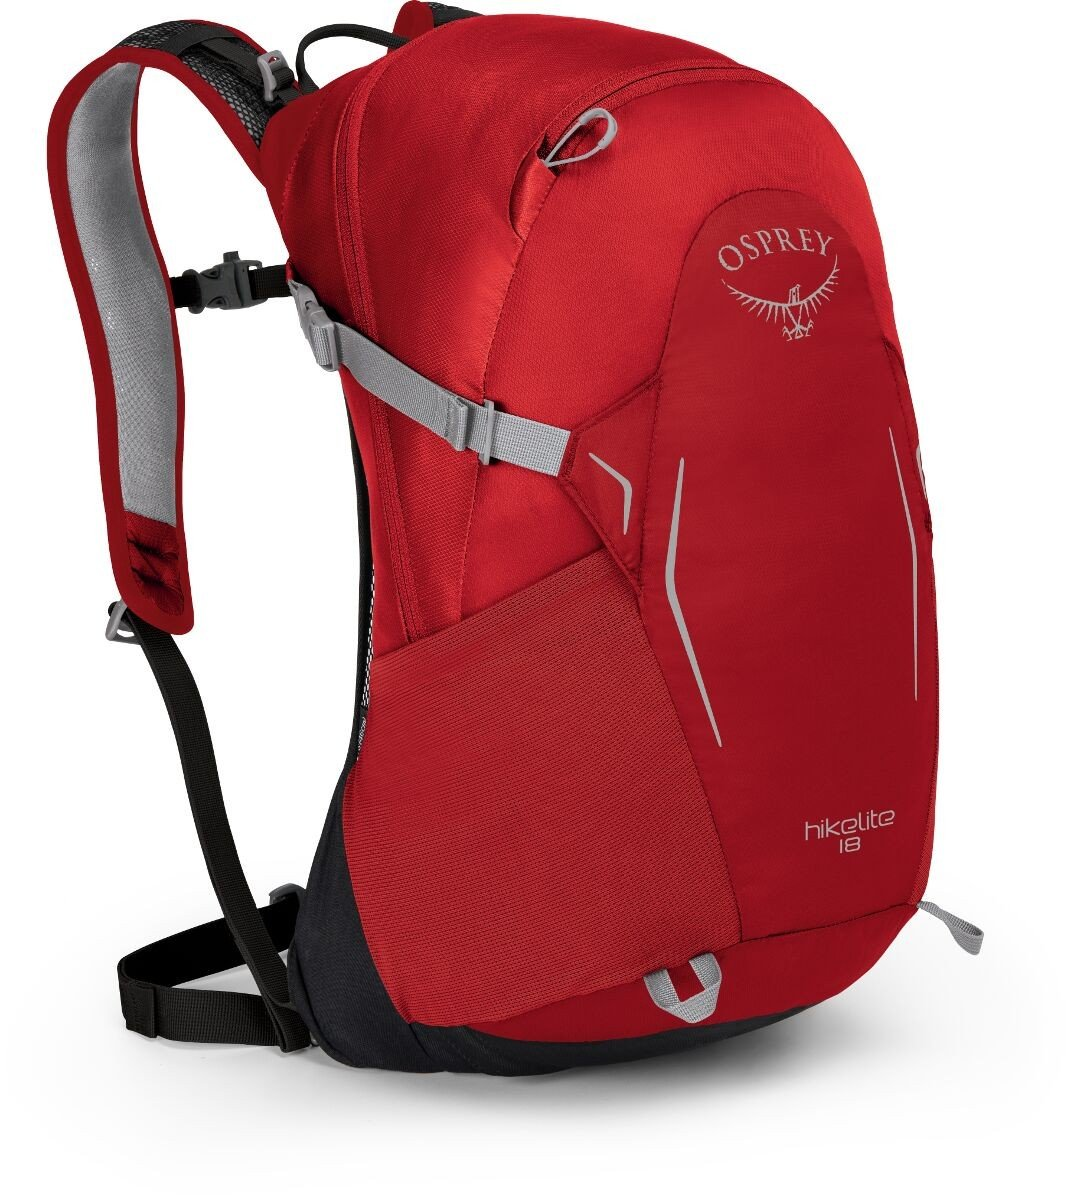 Рюкзак Osprey Hikelite 18 Tomato Red 009.1732